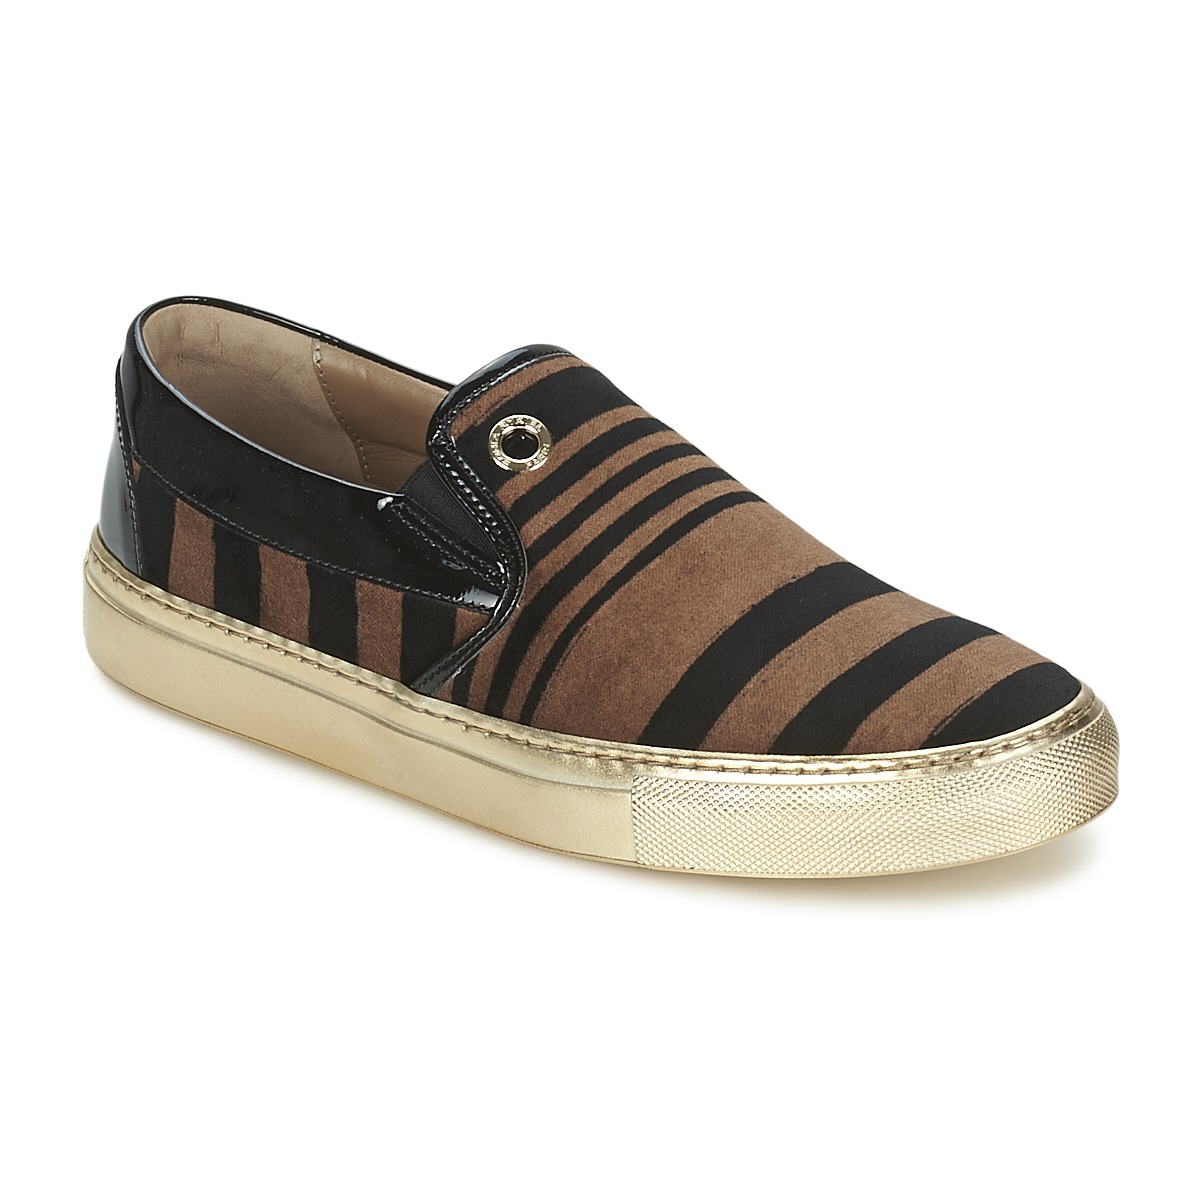 Sonia Rykiel STRIPES VELVET Noir / Marron